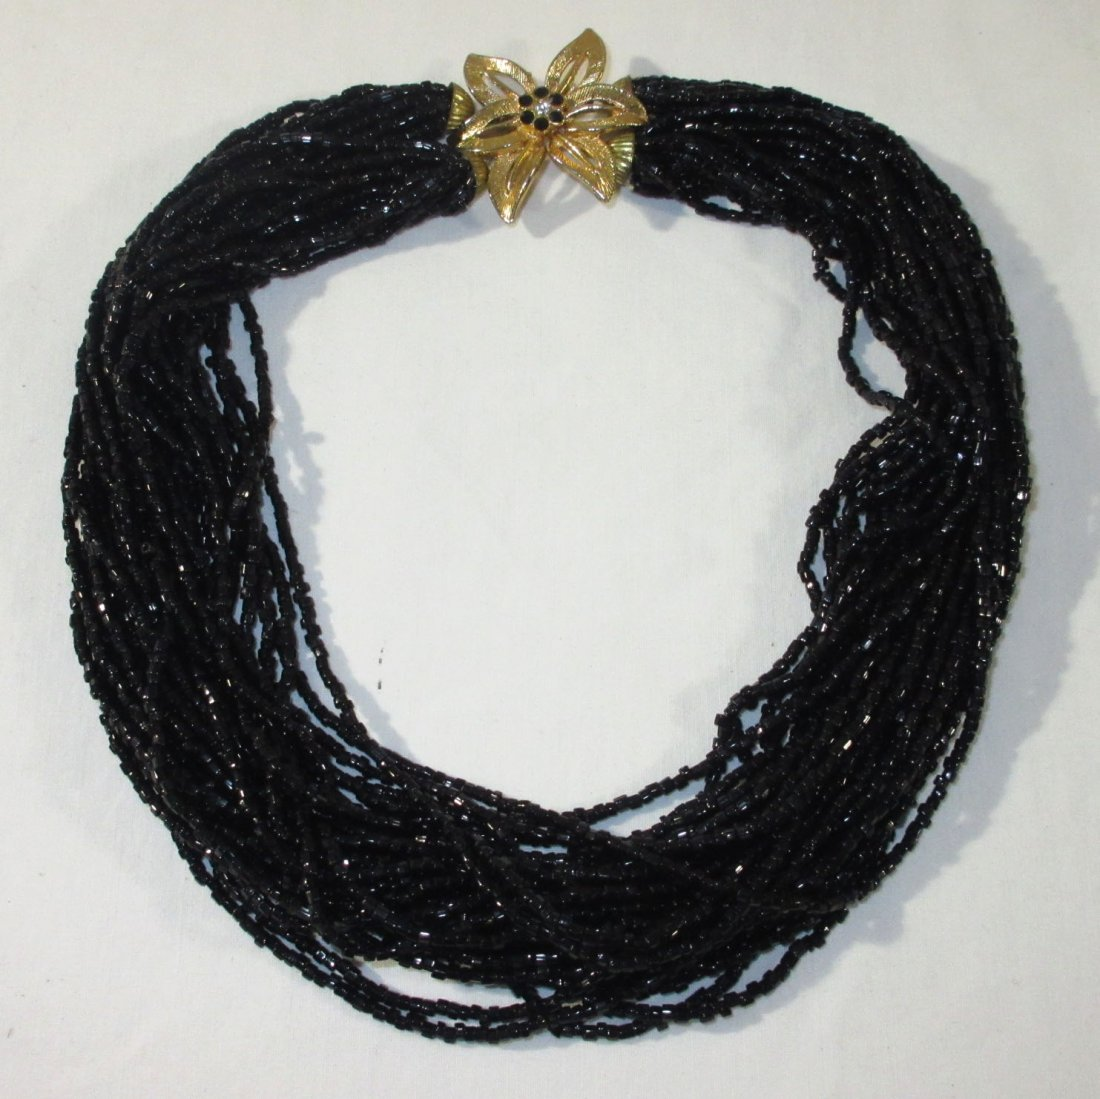 2 Gold/Black Glass Bead Multi-Strand Chokers - 3